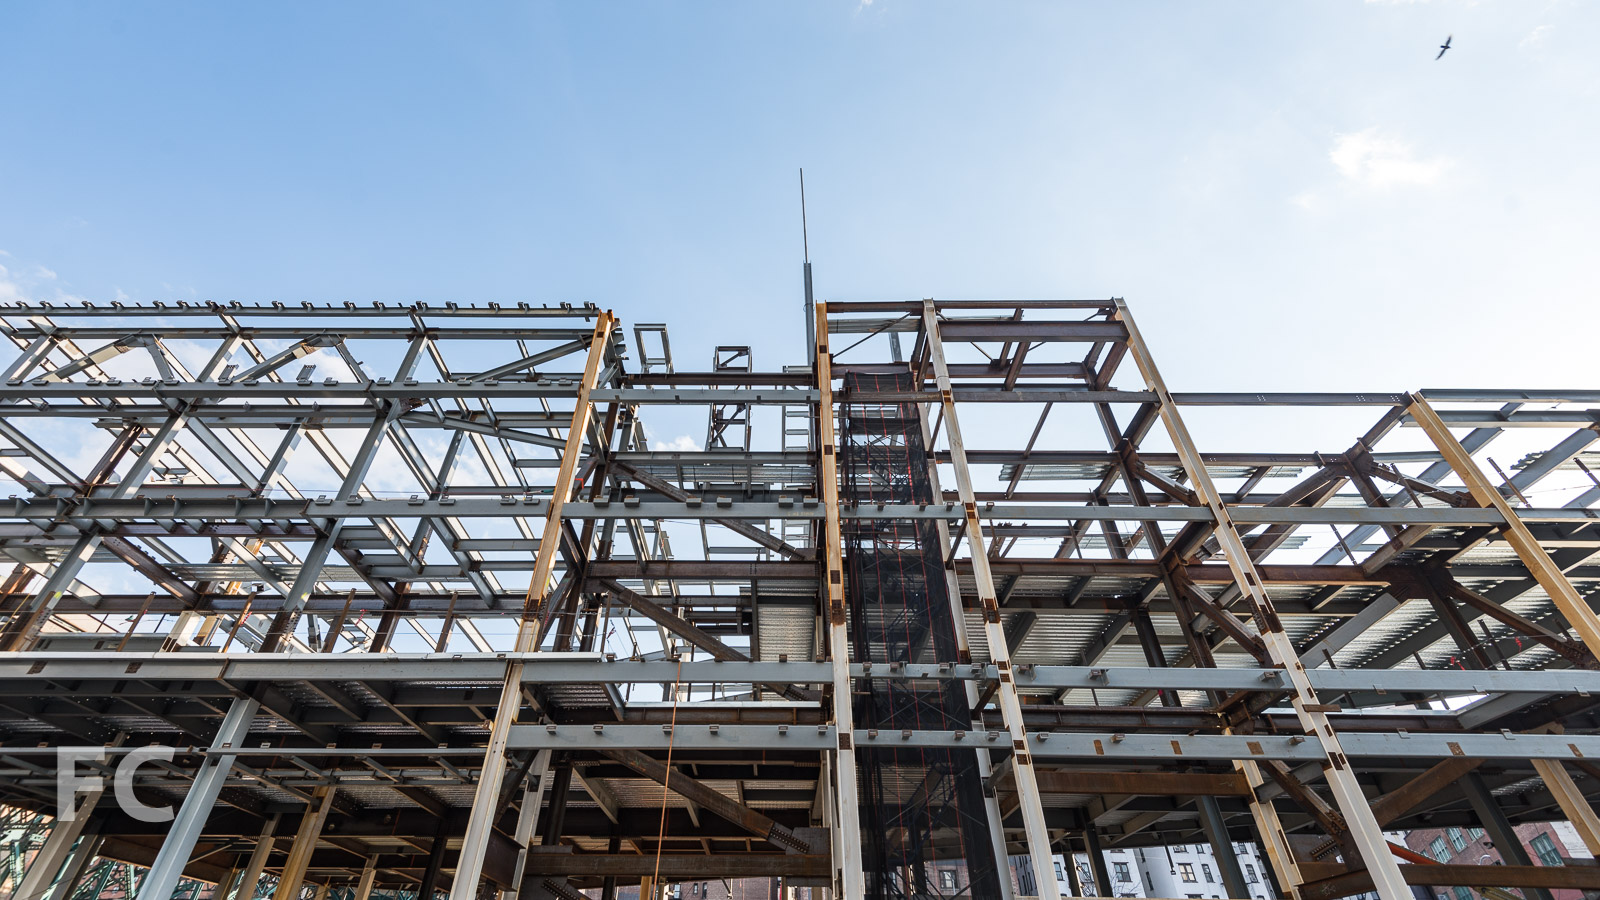 Steel superstructure of the Academic Conference Center.